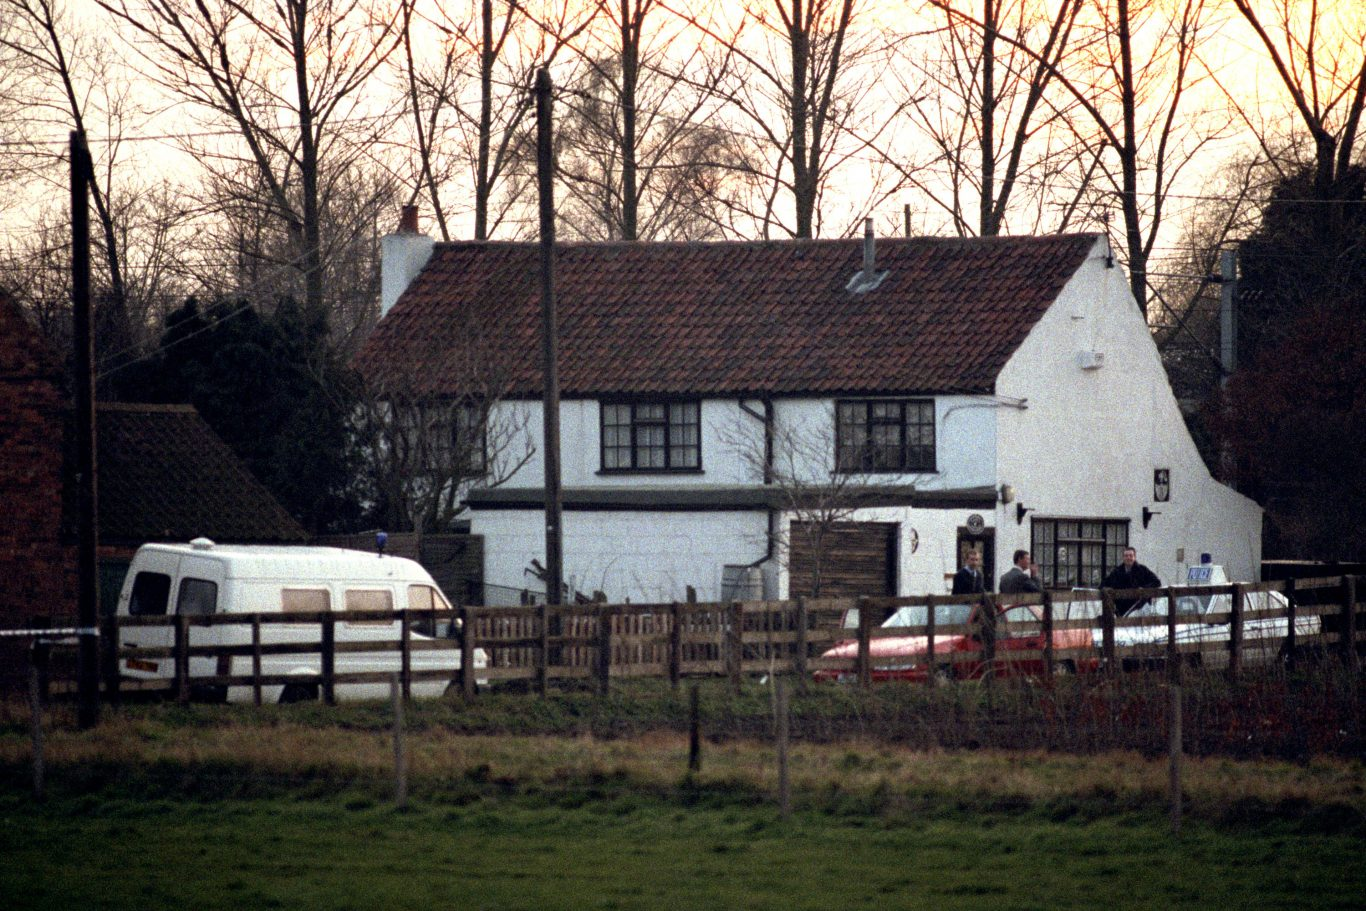 Michael Sams' house in Stuton on Trent (Claire Mackintosh/EMPICS)